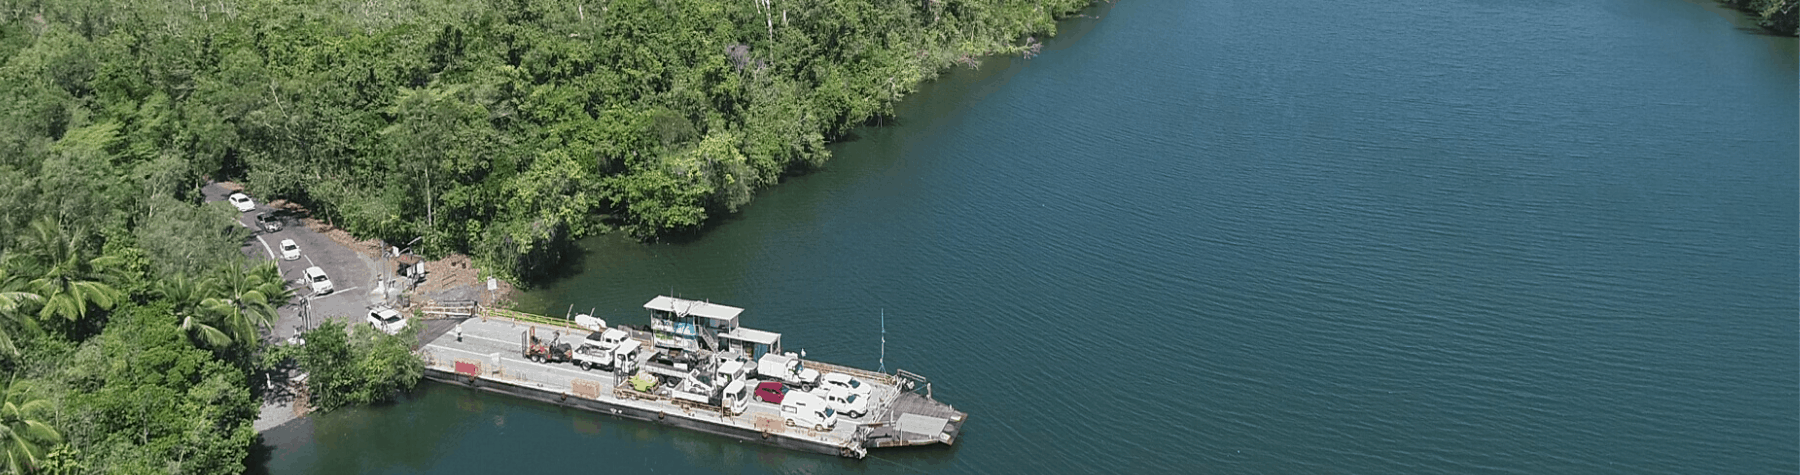 Daintree River Ferry Service Probity Audit Released to the Public